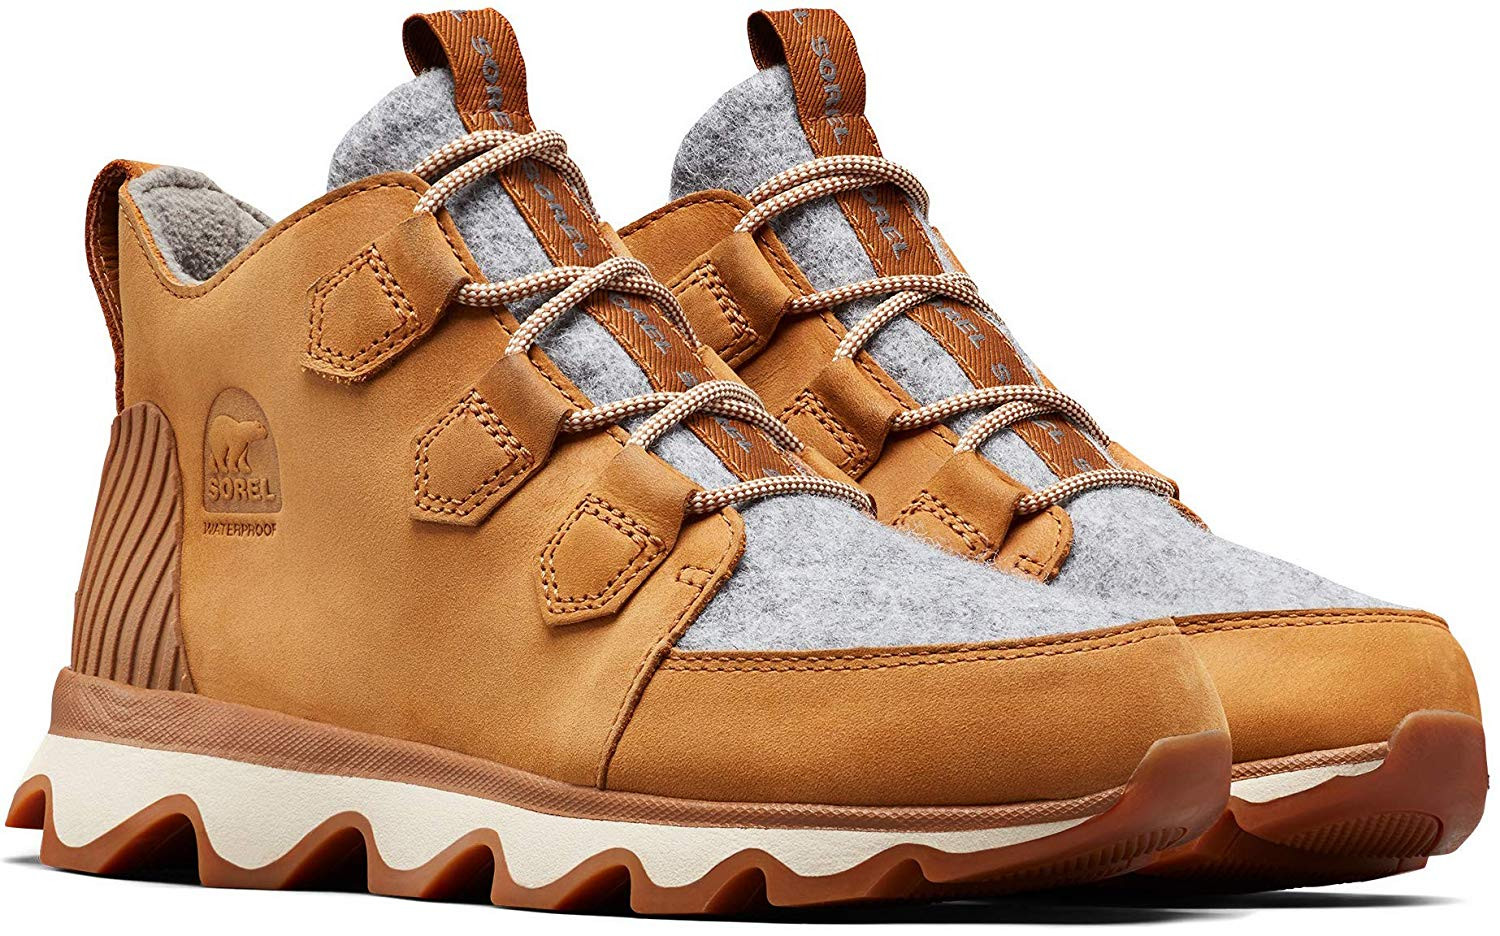 Sorel Kinetic Caribou Insulated Sneakers for Winter Camel Brown